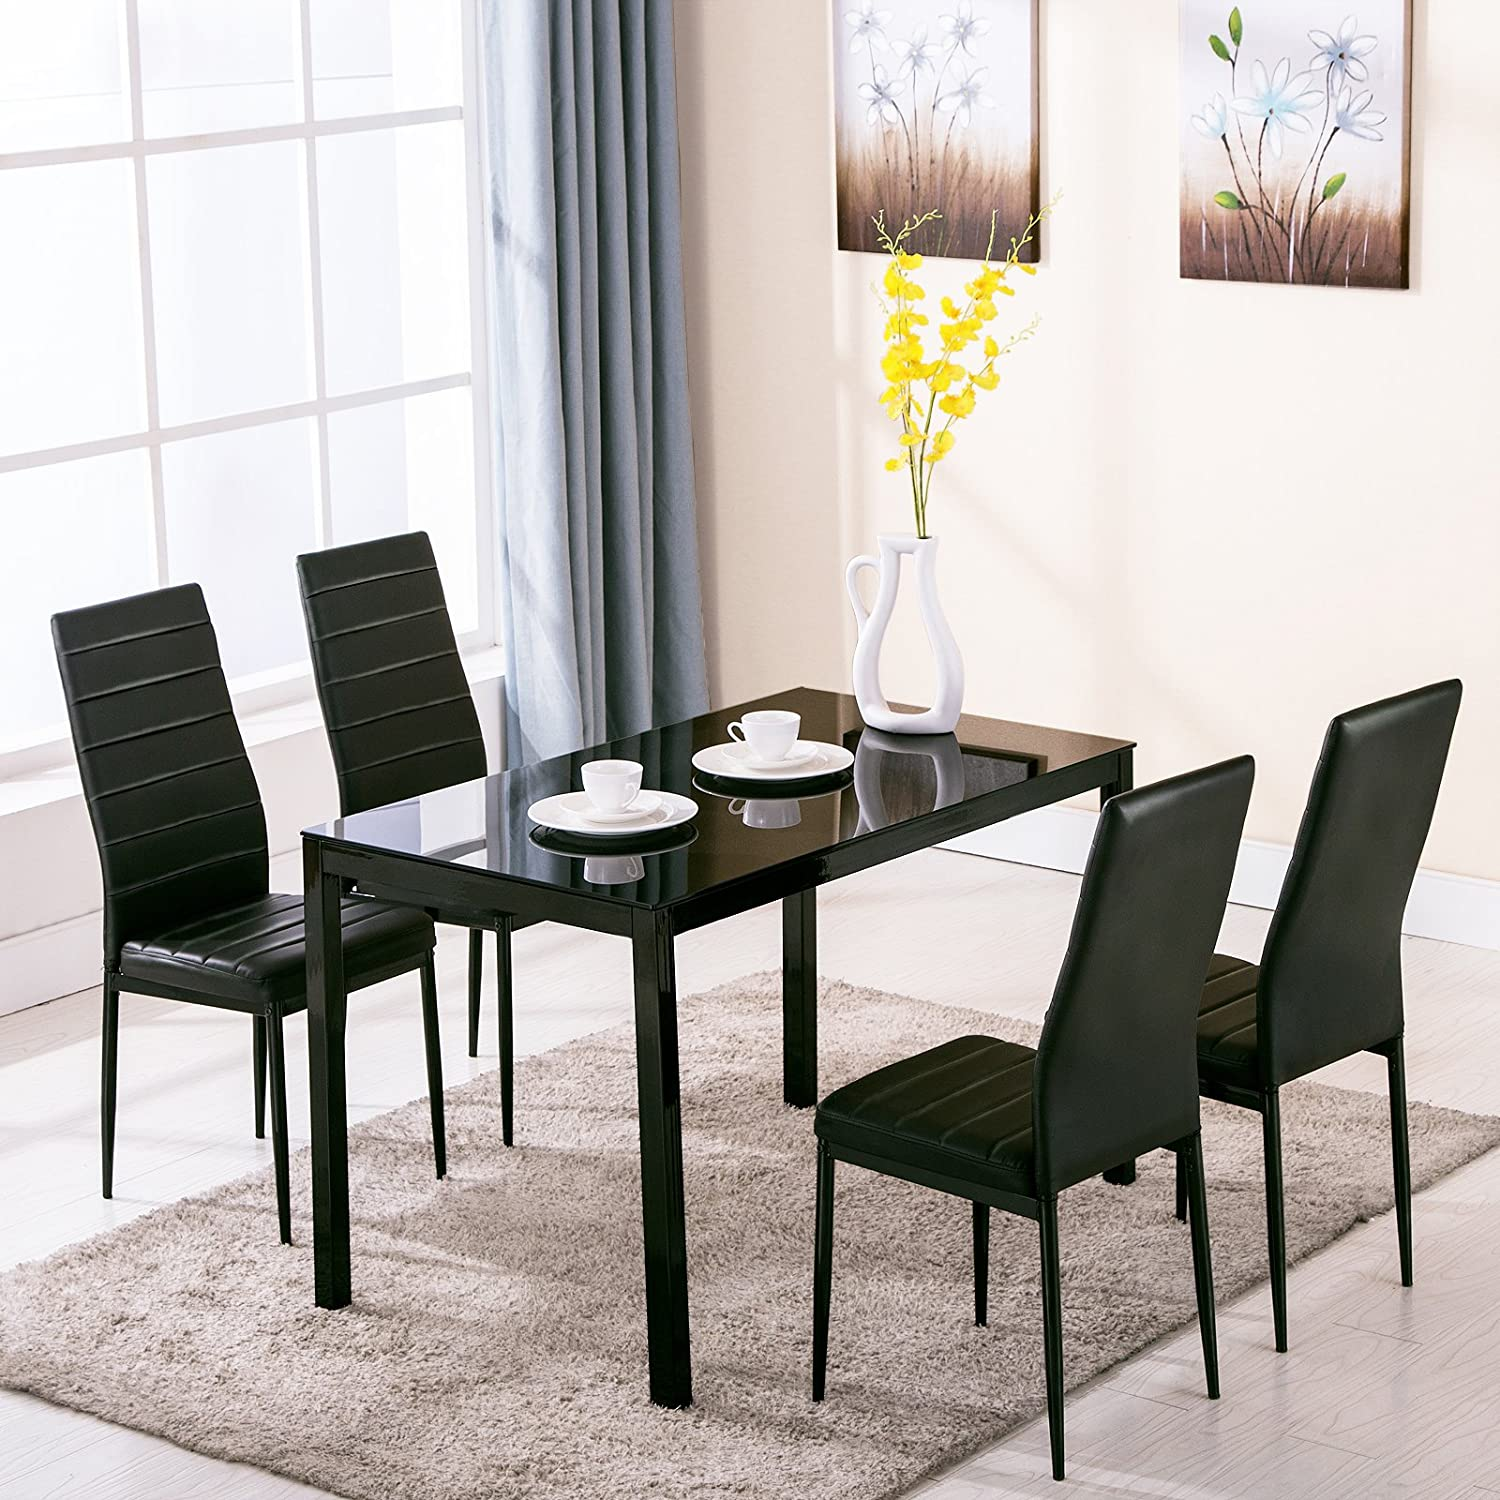 Amazon com   4Family 5 Piece Dining Table Set 4 Chairs Glass Metal Kitchen  Room Breakfast Furniture   Table   Chair SetsAmazon com   4Family 5 Piece Dining Table Set 4 Chairs Glass Metal  . Metal Dining Room Table Sets. Home Design Ideas